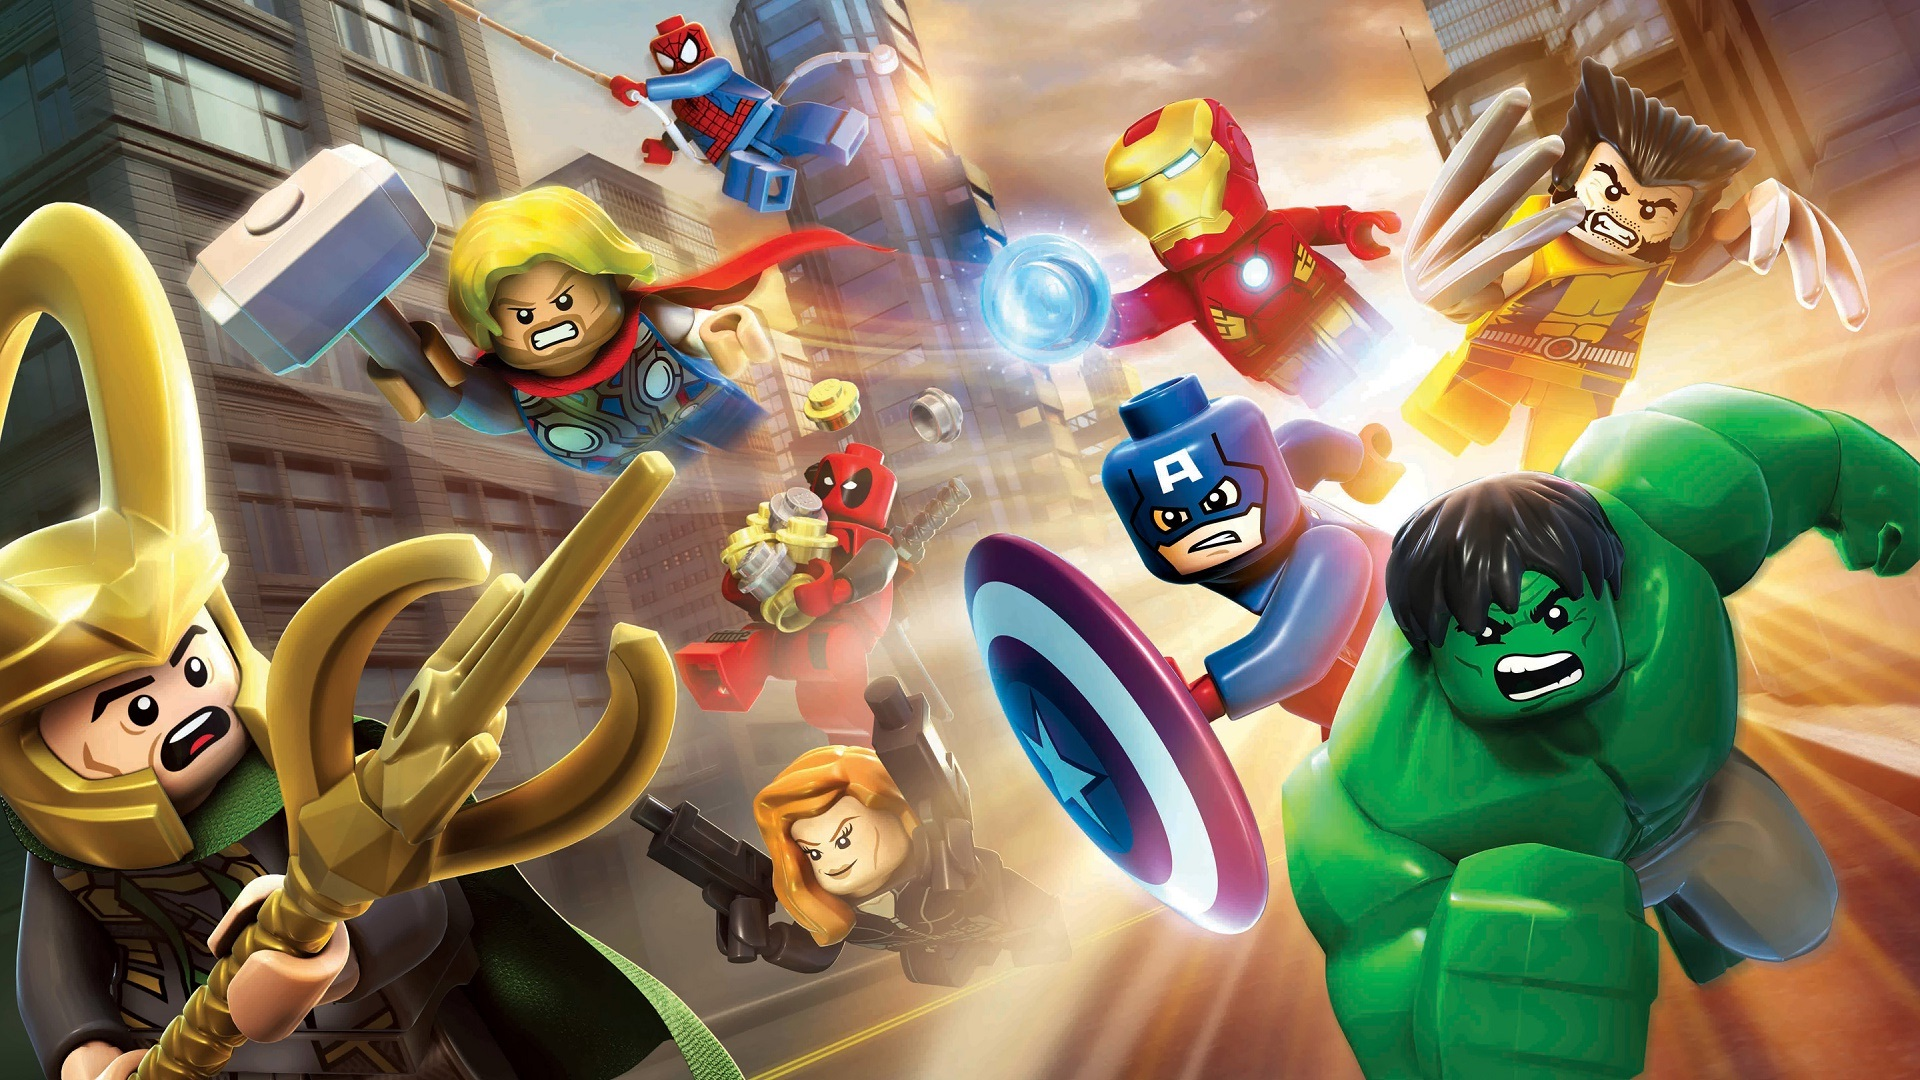 lego marvel super heroes wallpaper hd wallpaper | background image